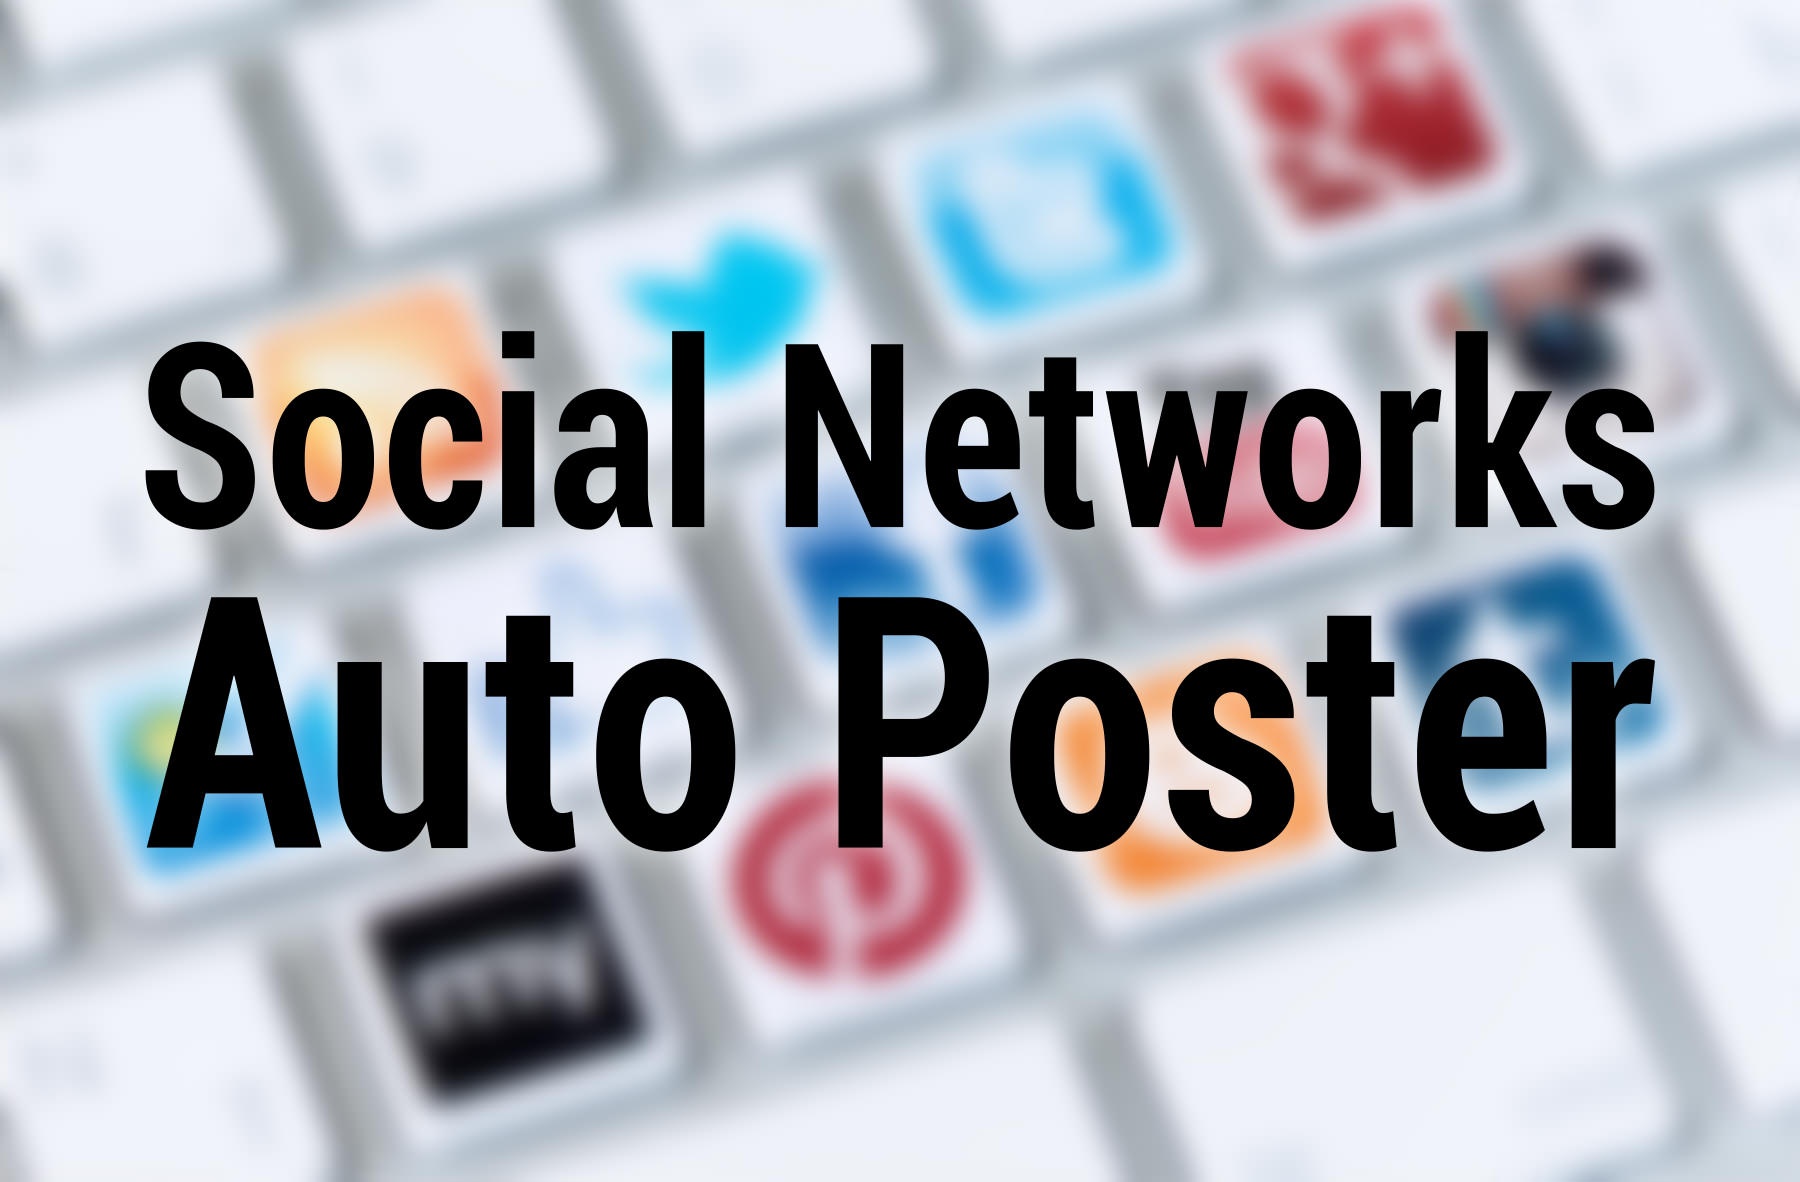 Social Networks Auto Poster (SNAP) download plugin wordpress Pro